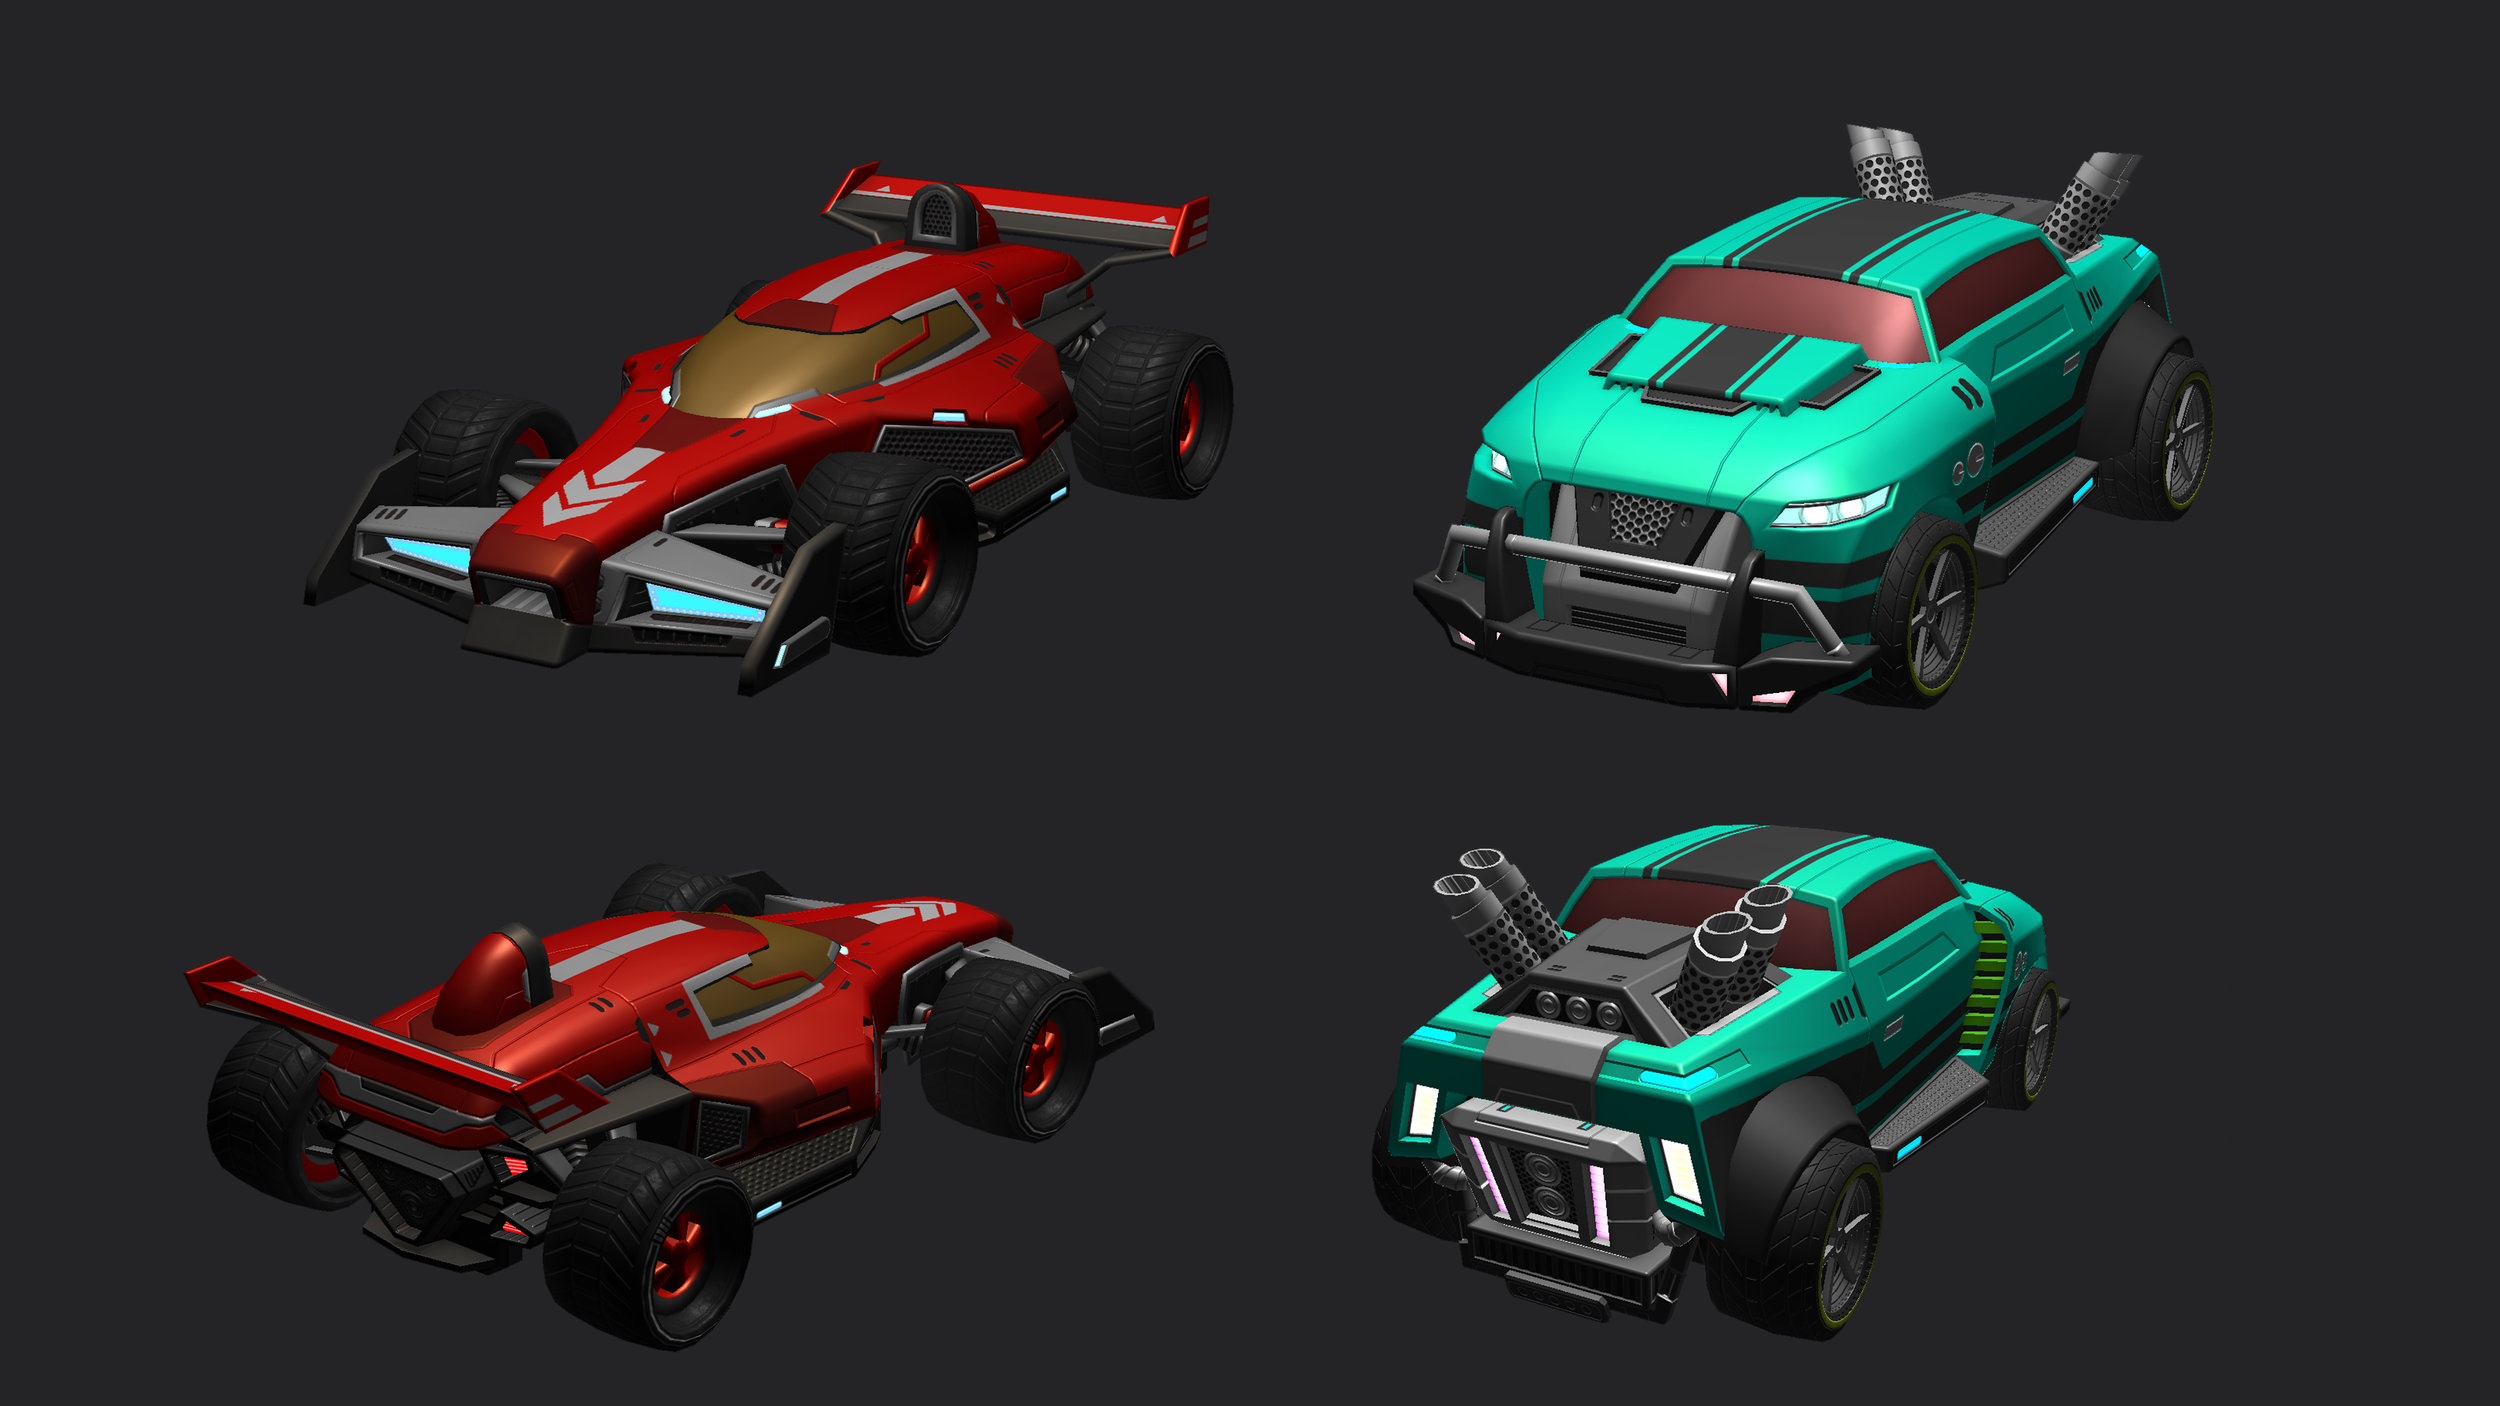 3D vehicles CAH designed for this game